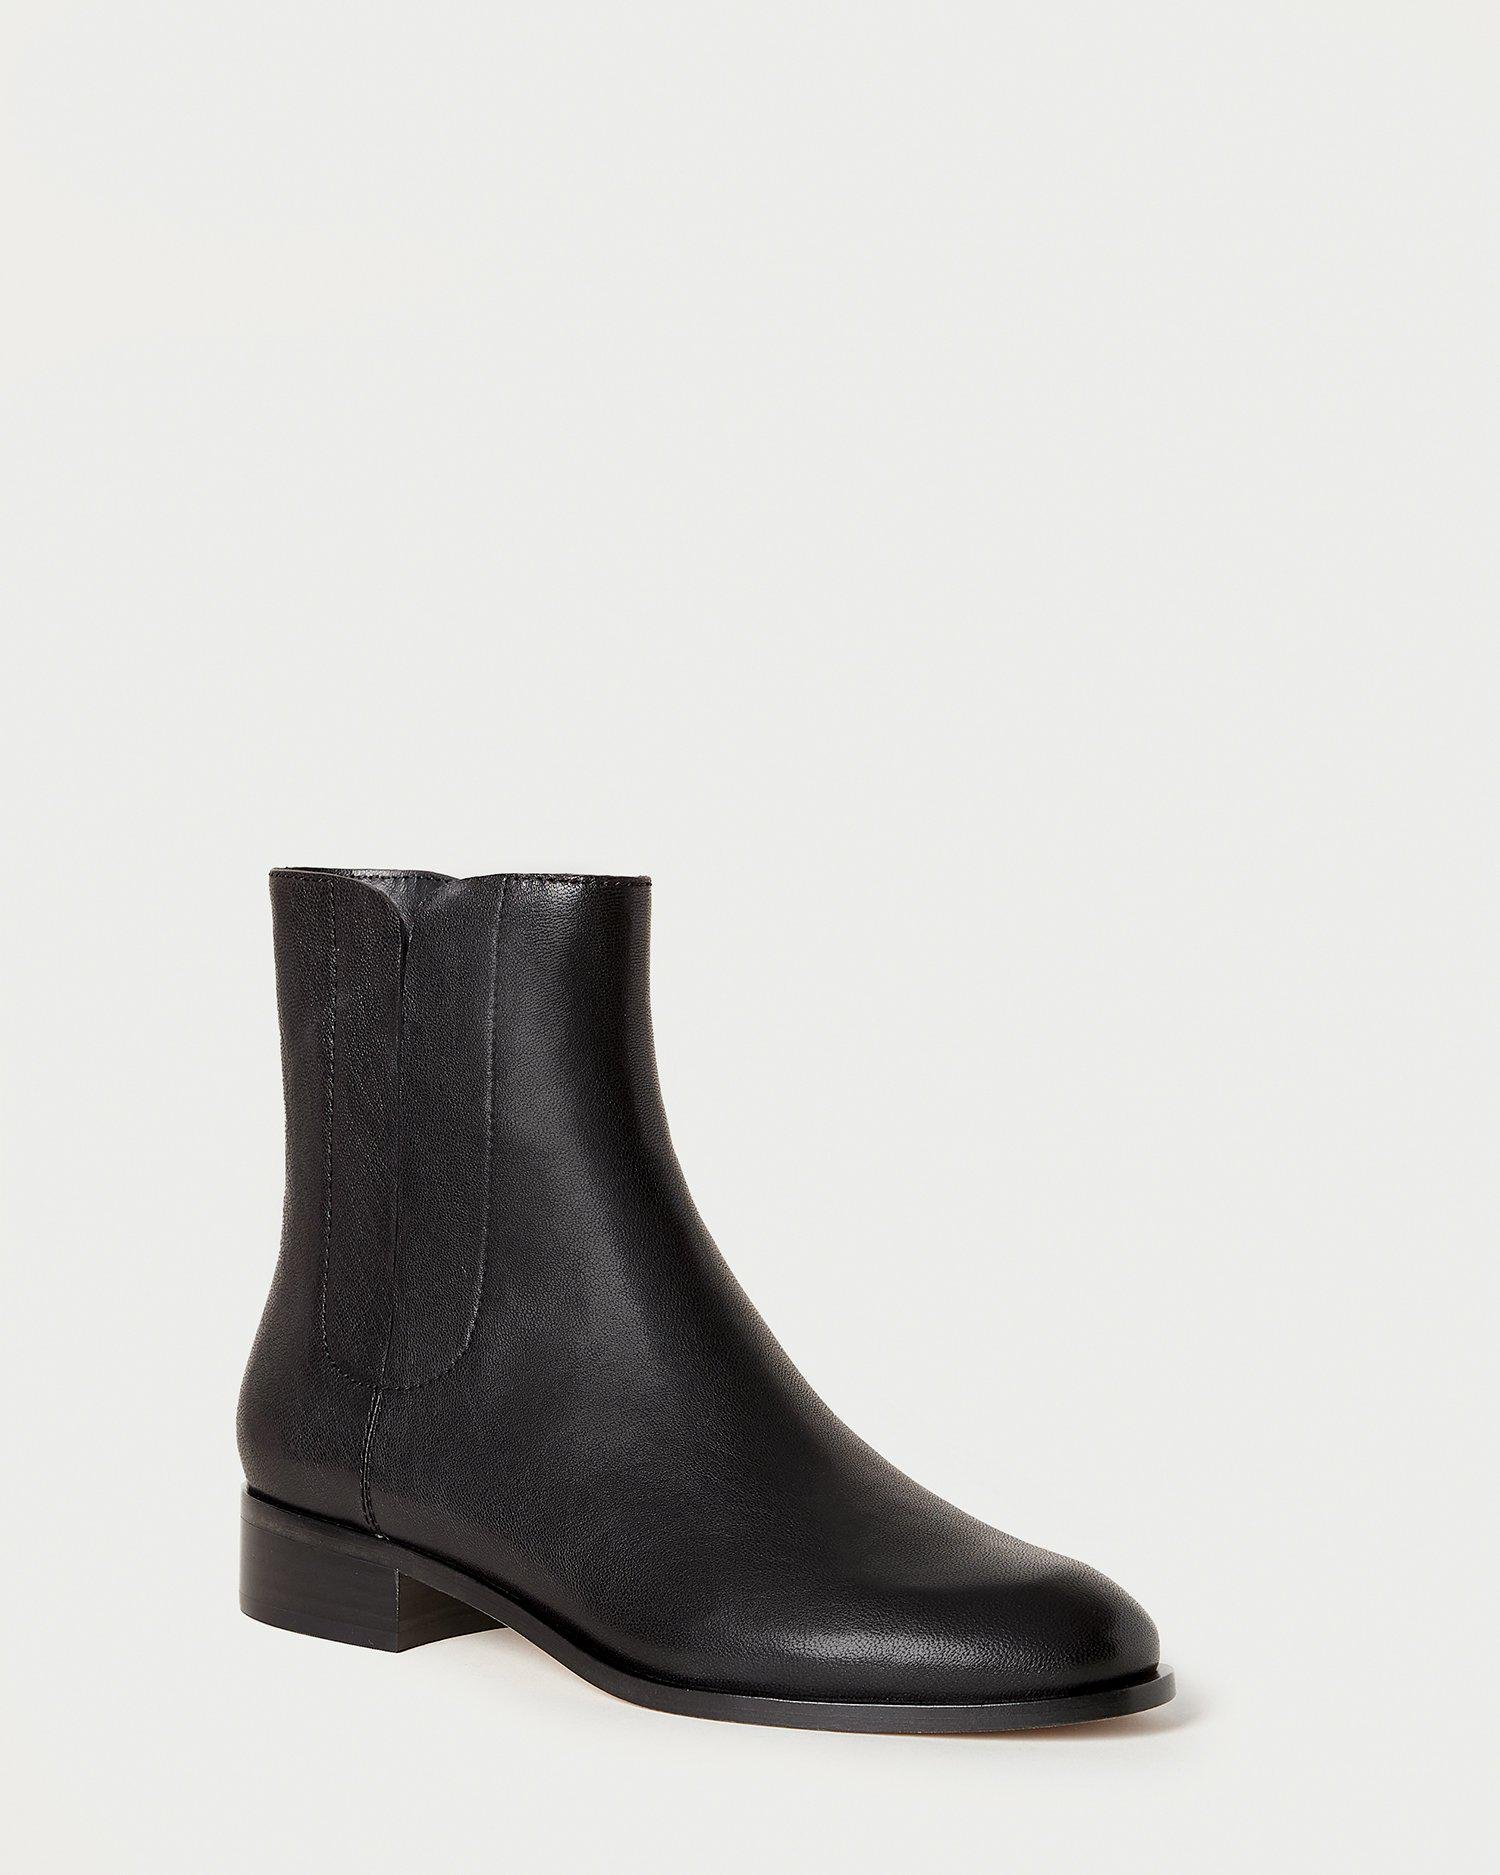 Ronnie Black Ankle Boot